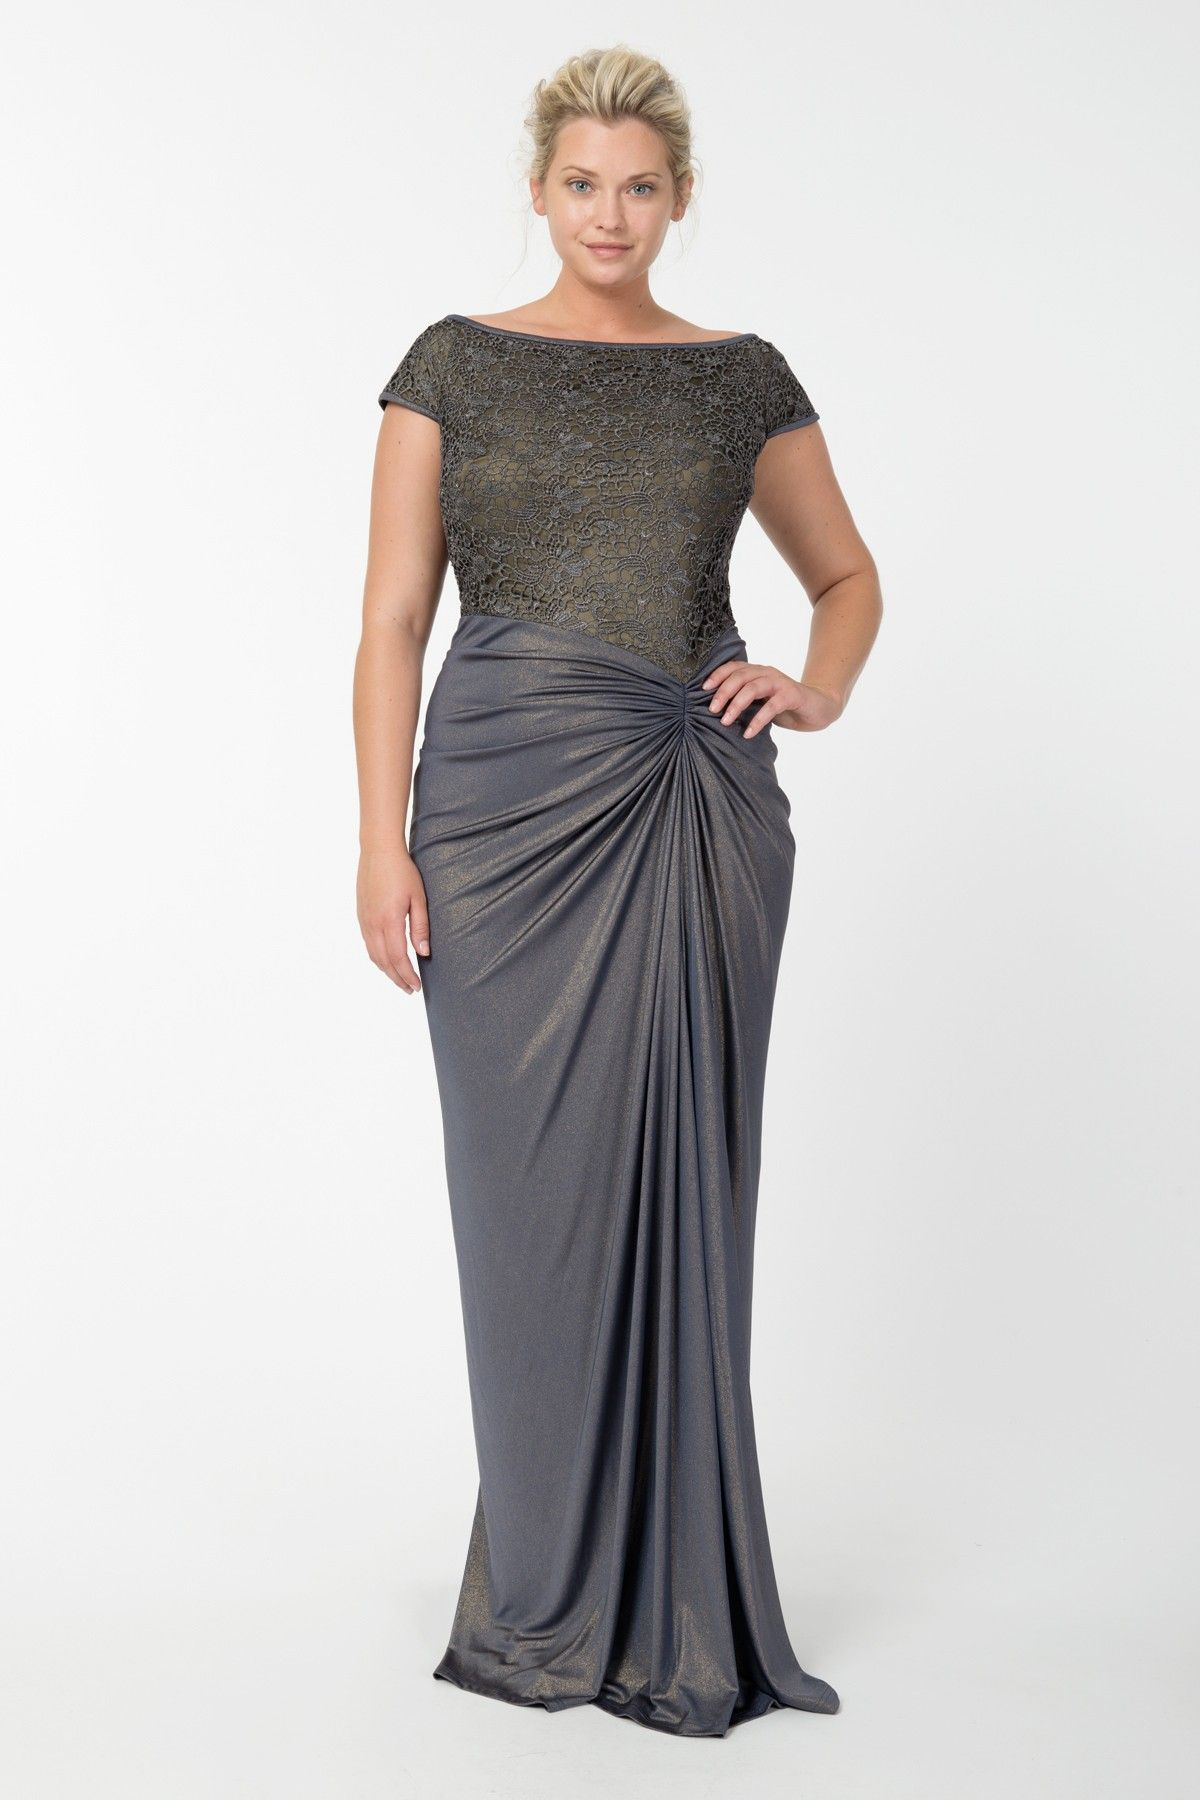 d7953ed551e 20 Plus Size Evening Dresses to Look Like Queen